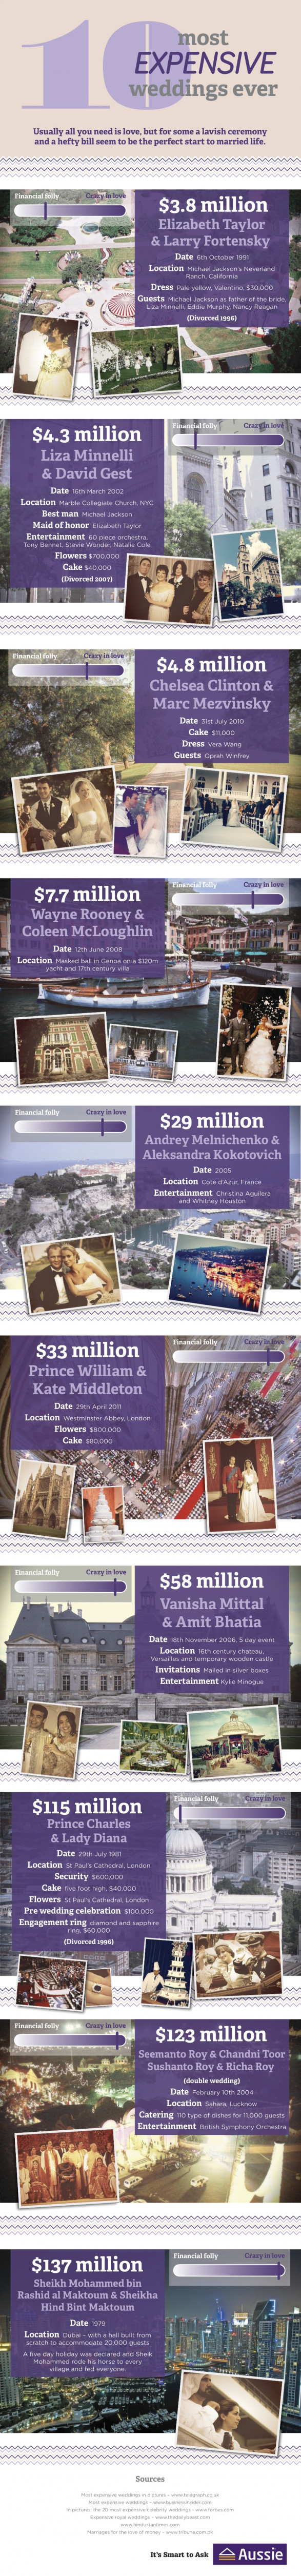 10 Most Expensive Weddings [Infographic]